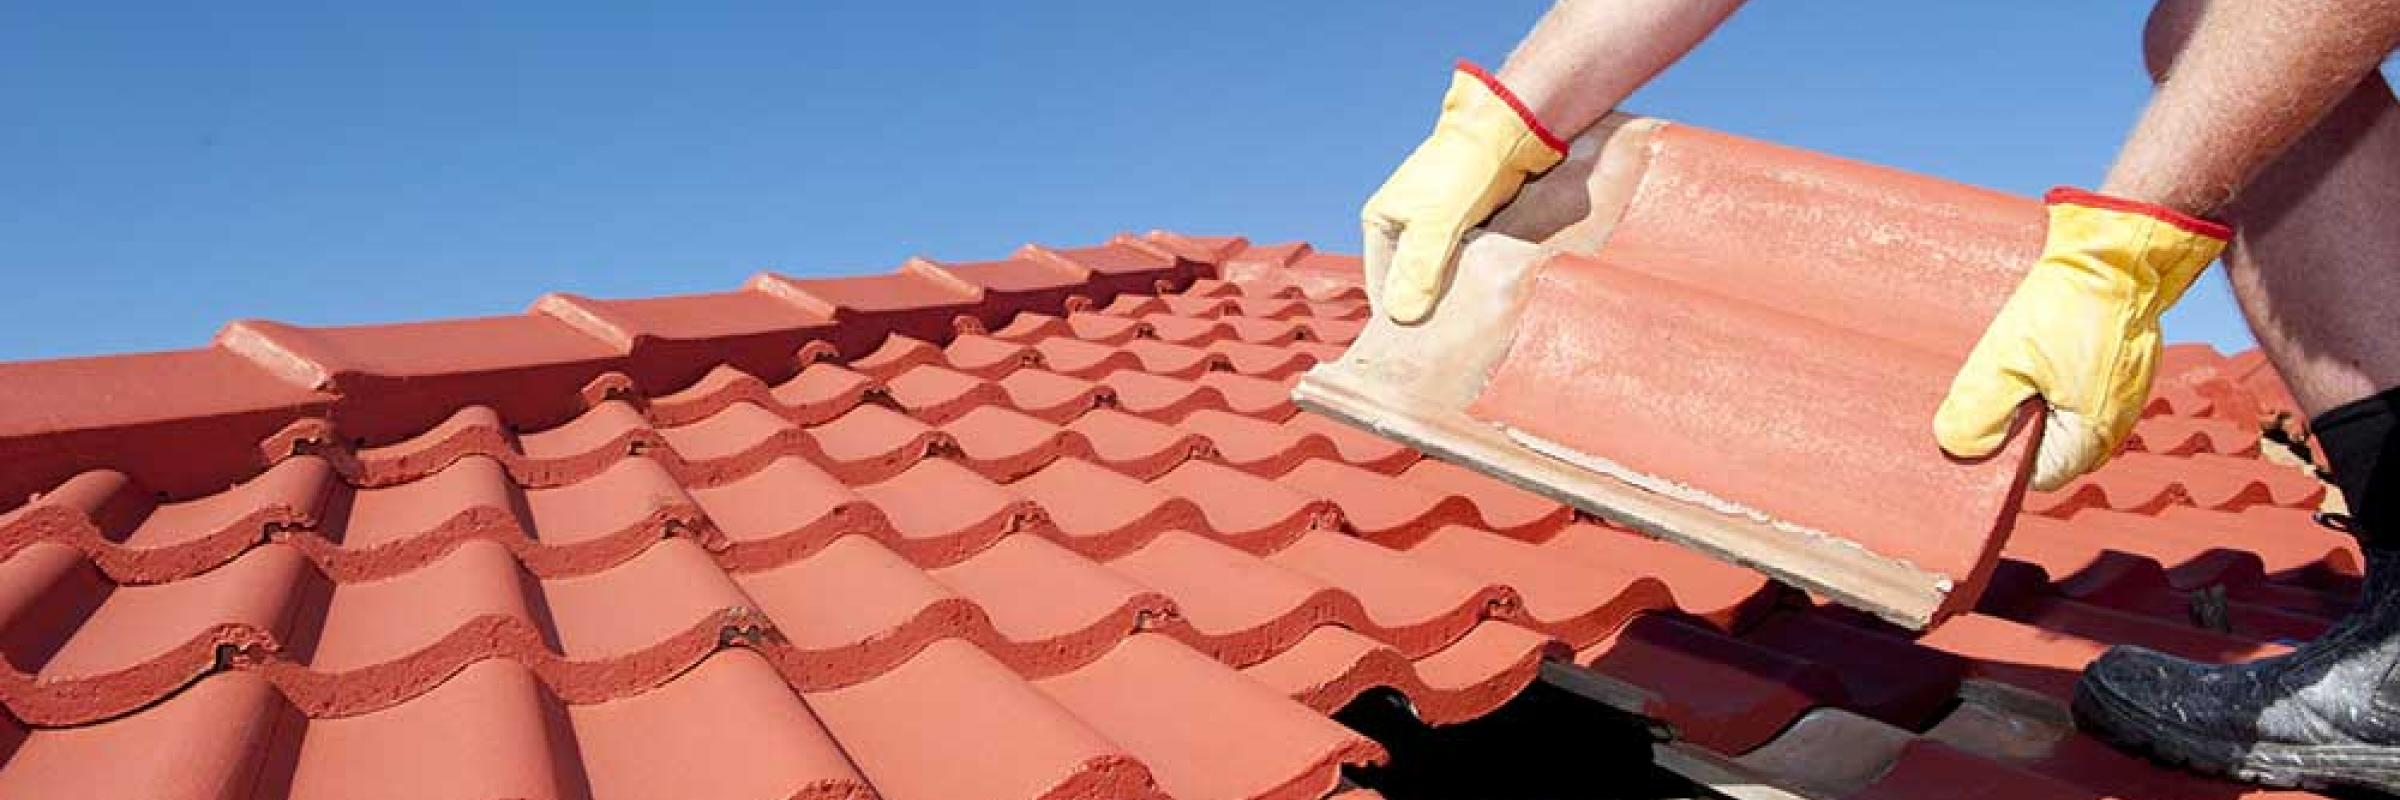 Florida Roofing, Gutters, & Siding